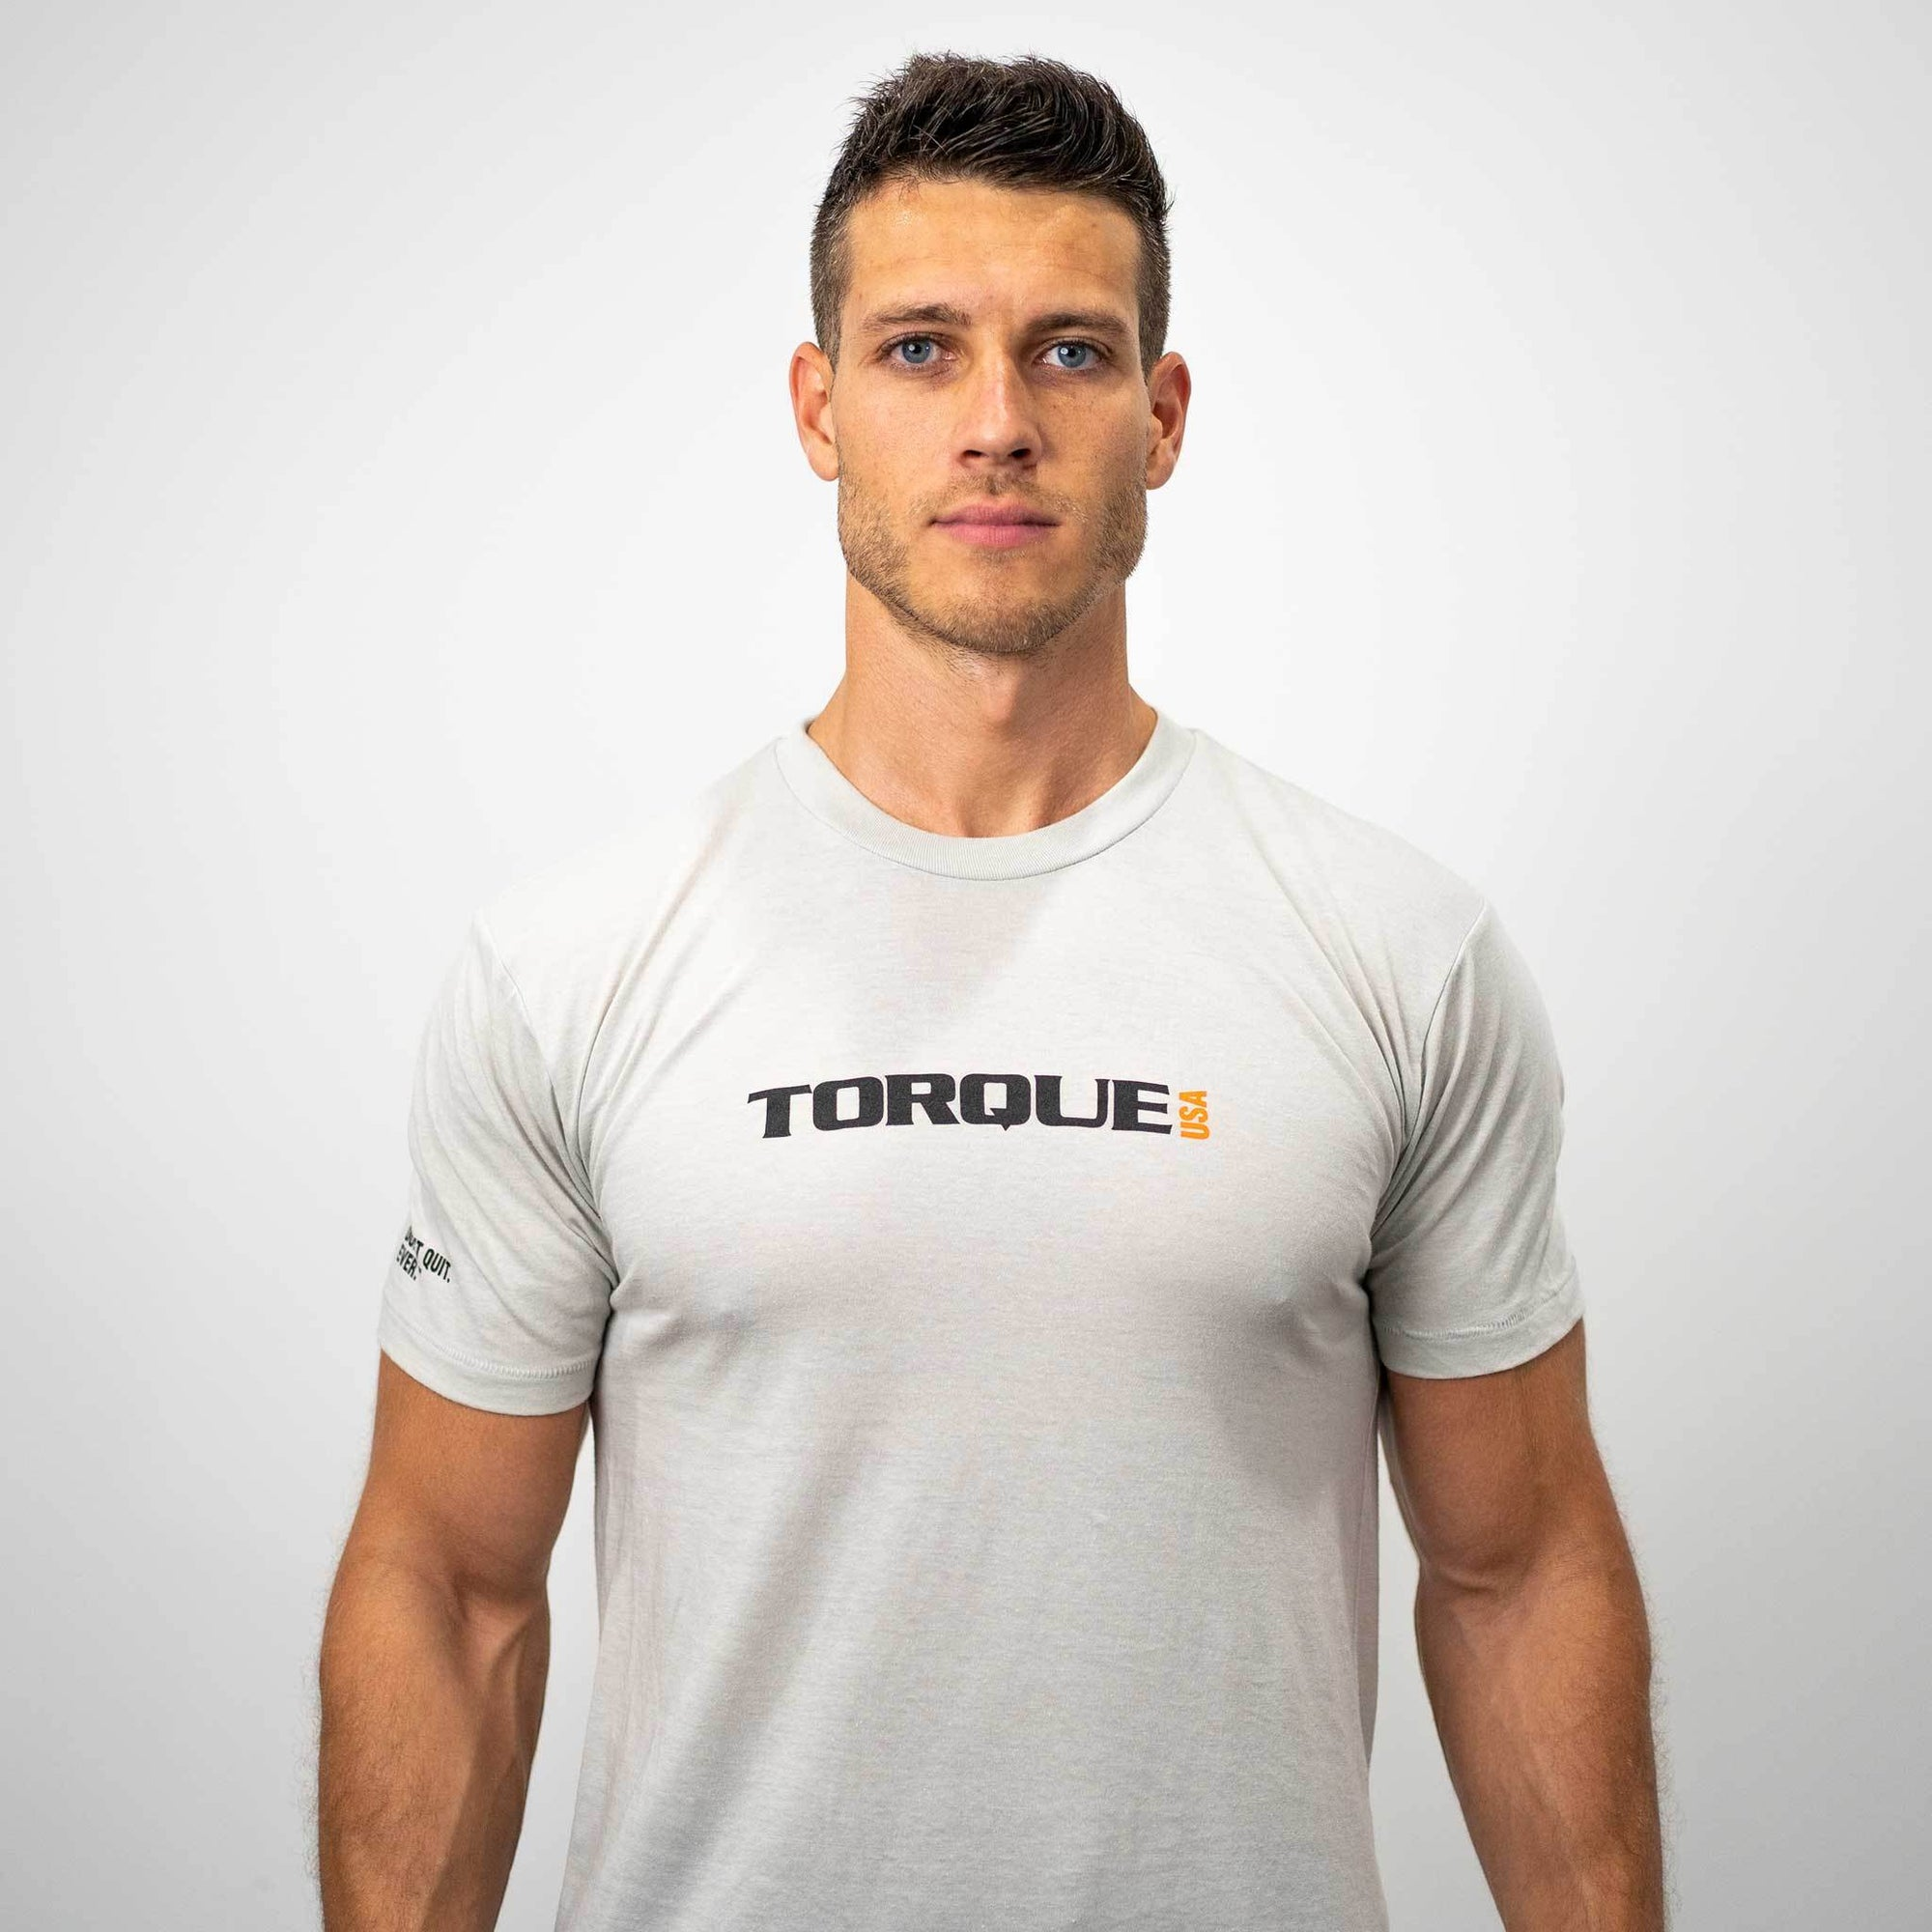 Man wearing white Torque t-shirt